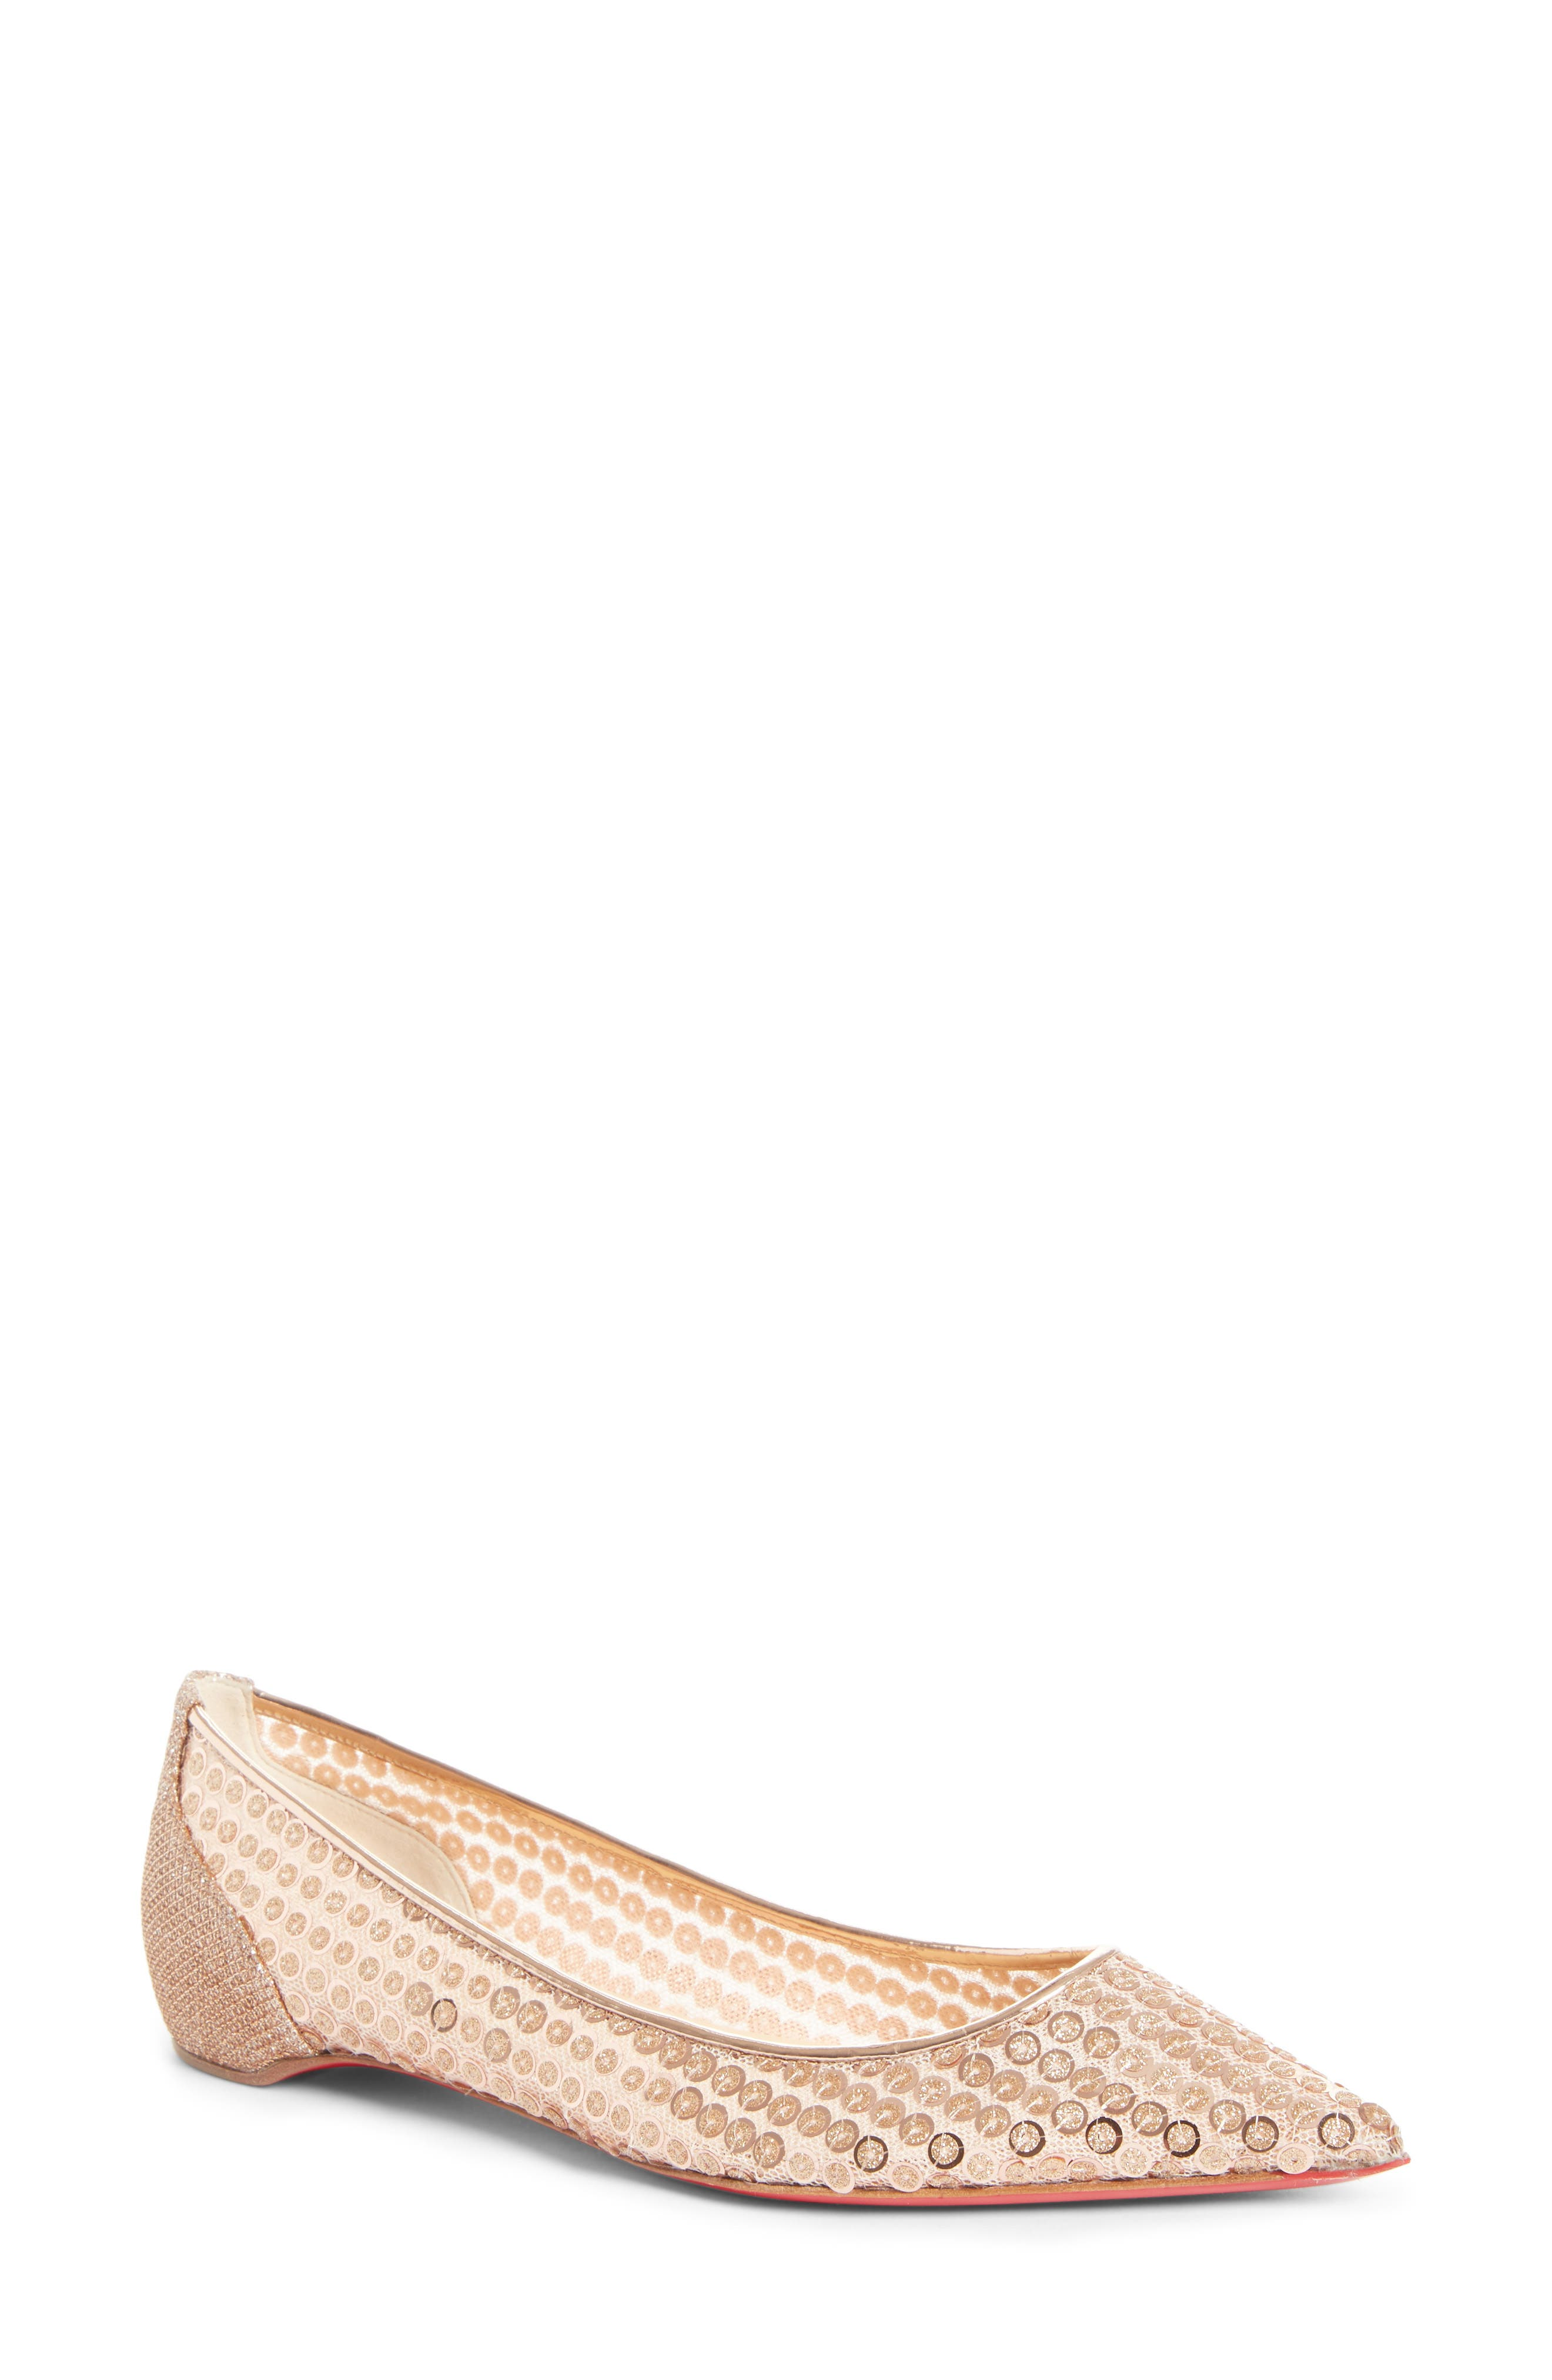 Christian Louboutin Cabaret Sequin Pointy Toe Flat (Women)